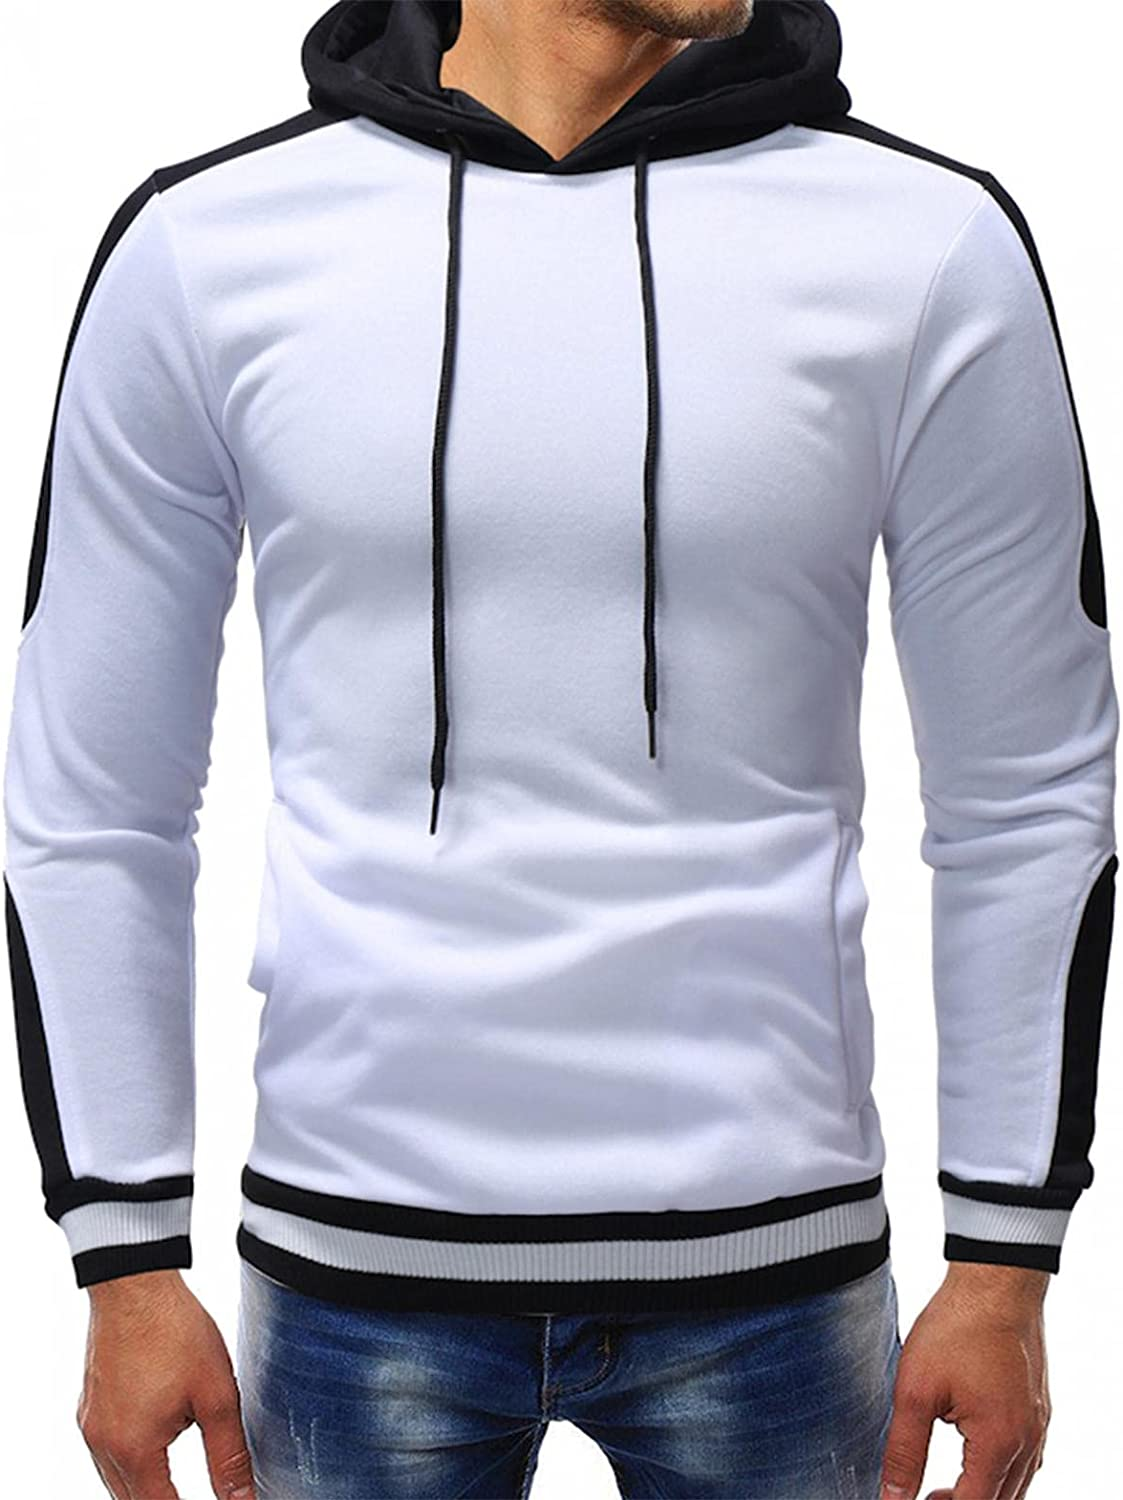 Sweatshirts for Trust Men Cotton Blend Contrast Max 46% OFF Color Pullover Hooded